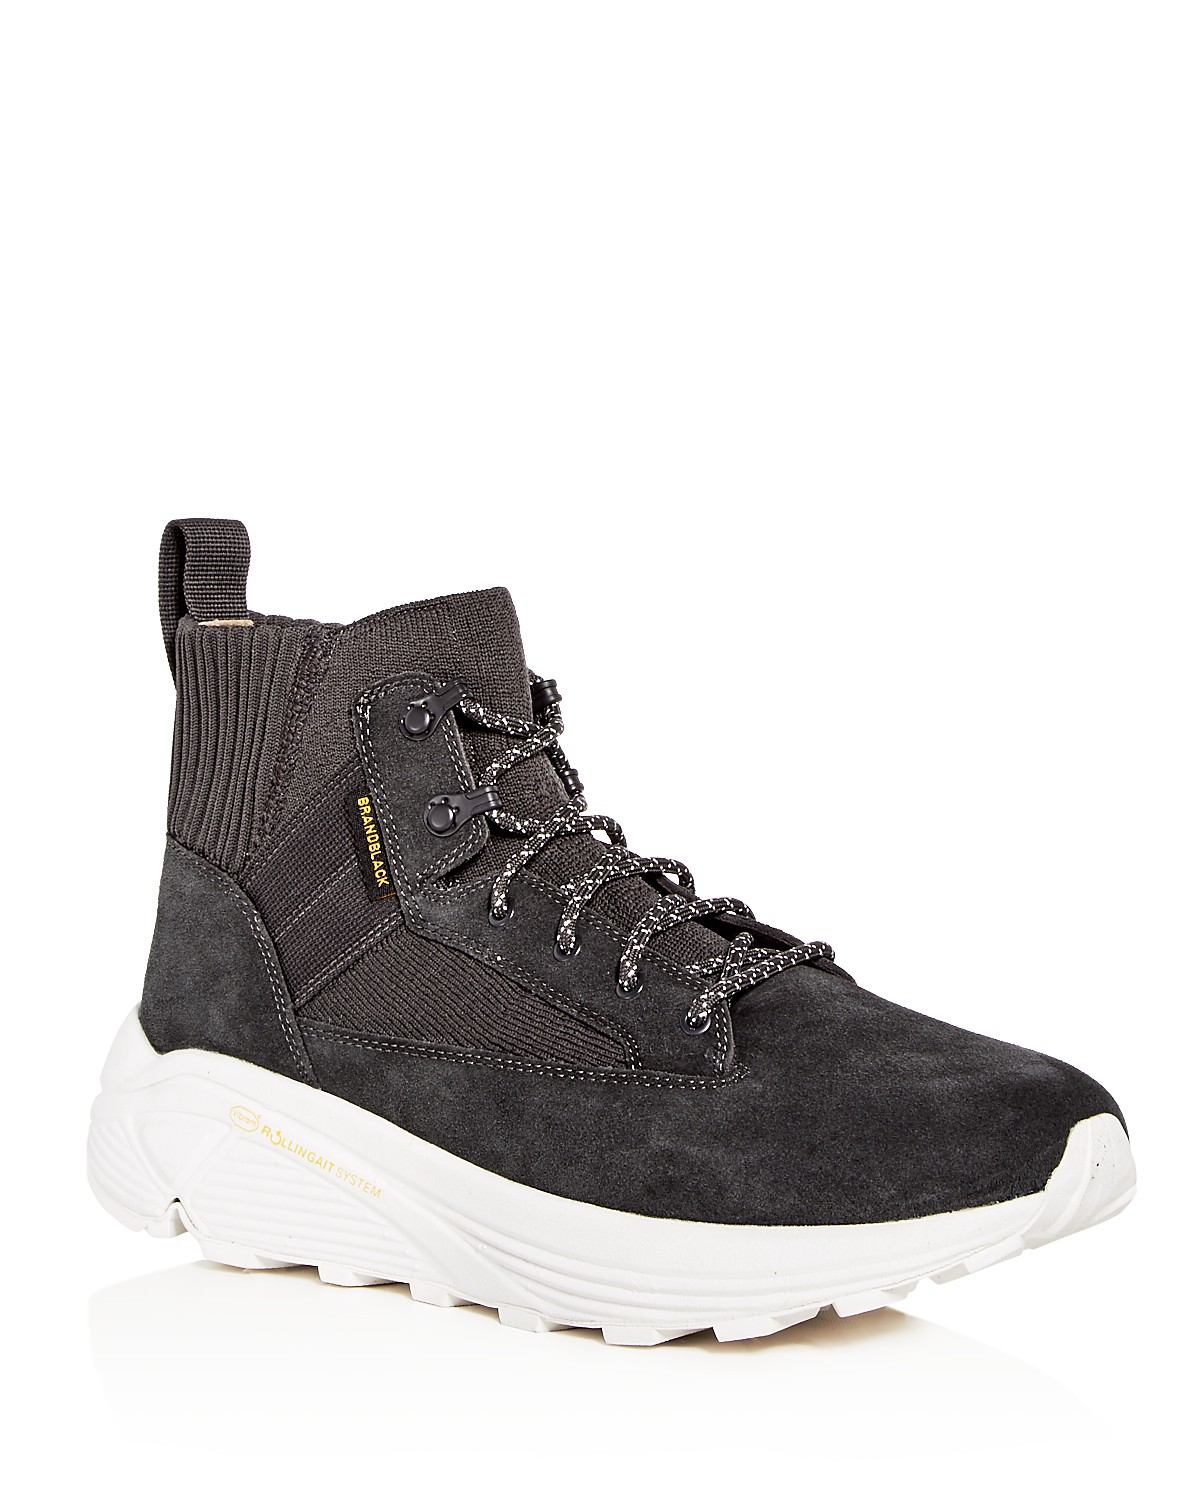 BRANDBLACK Men's Mil Spec Hiker Suede & Knit High Top Sneakers EPdRyDY0Jz